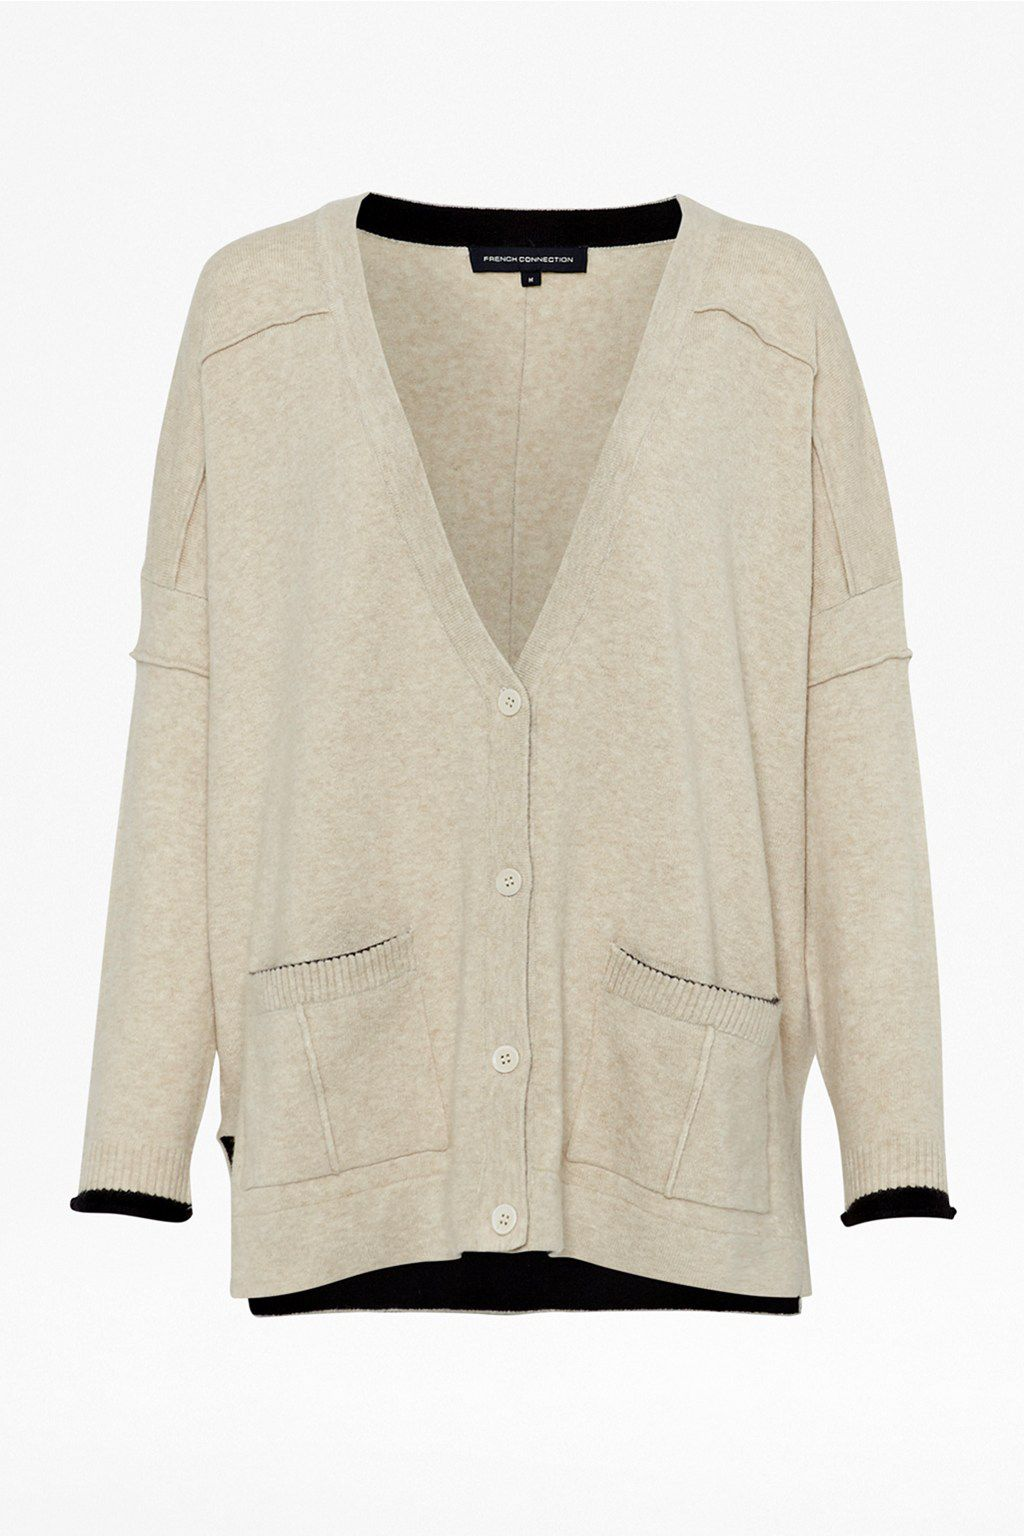 Vincent vhari long sleeve cardigan